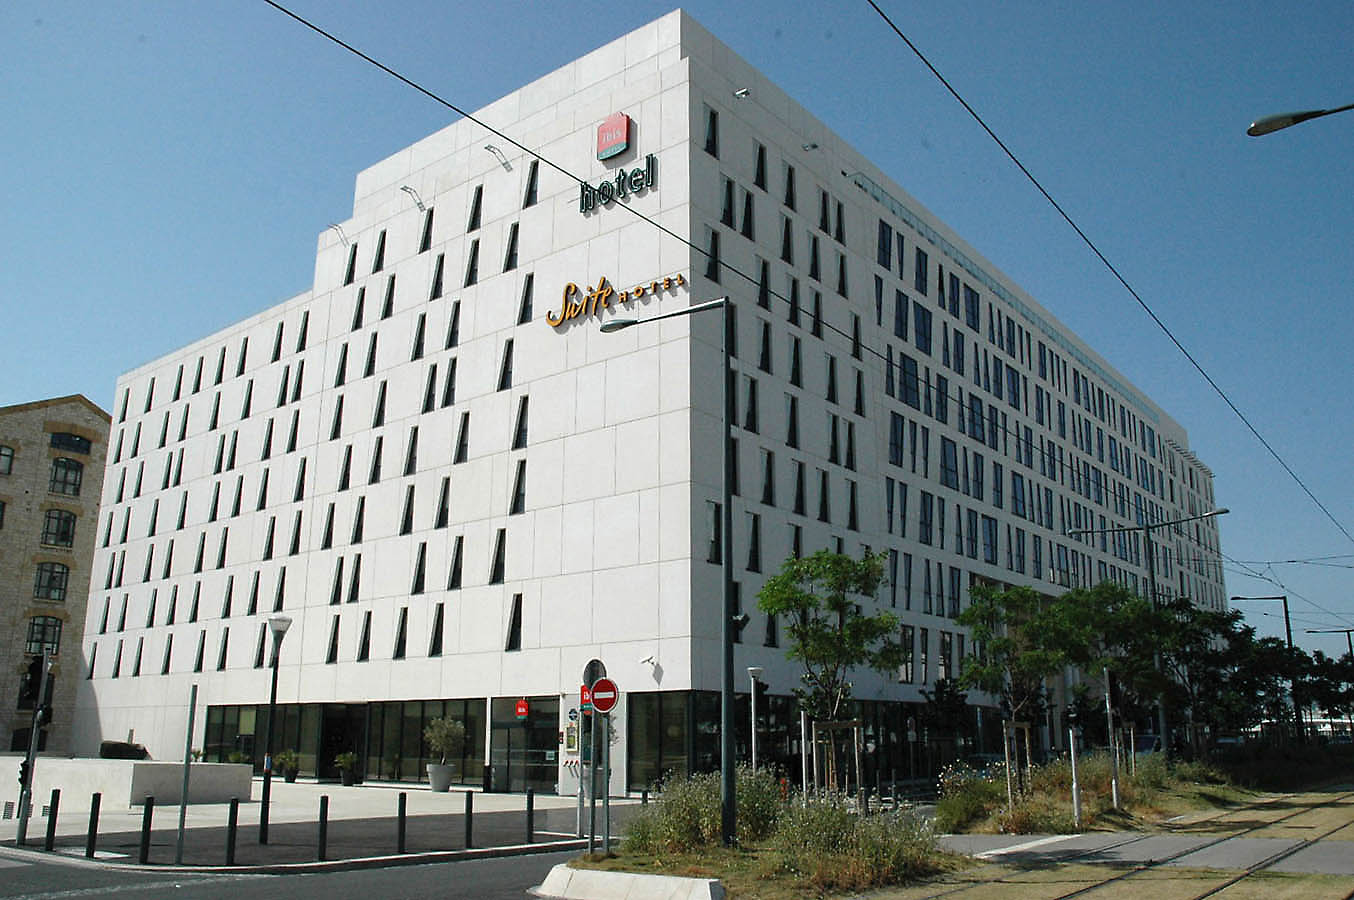 Ibis hotel in marseille france for Hotels ibis france